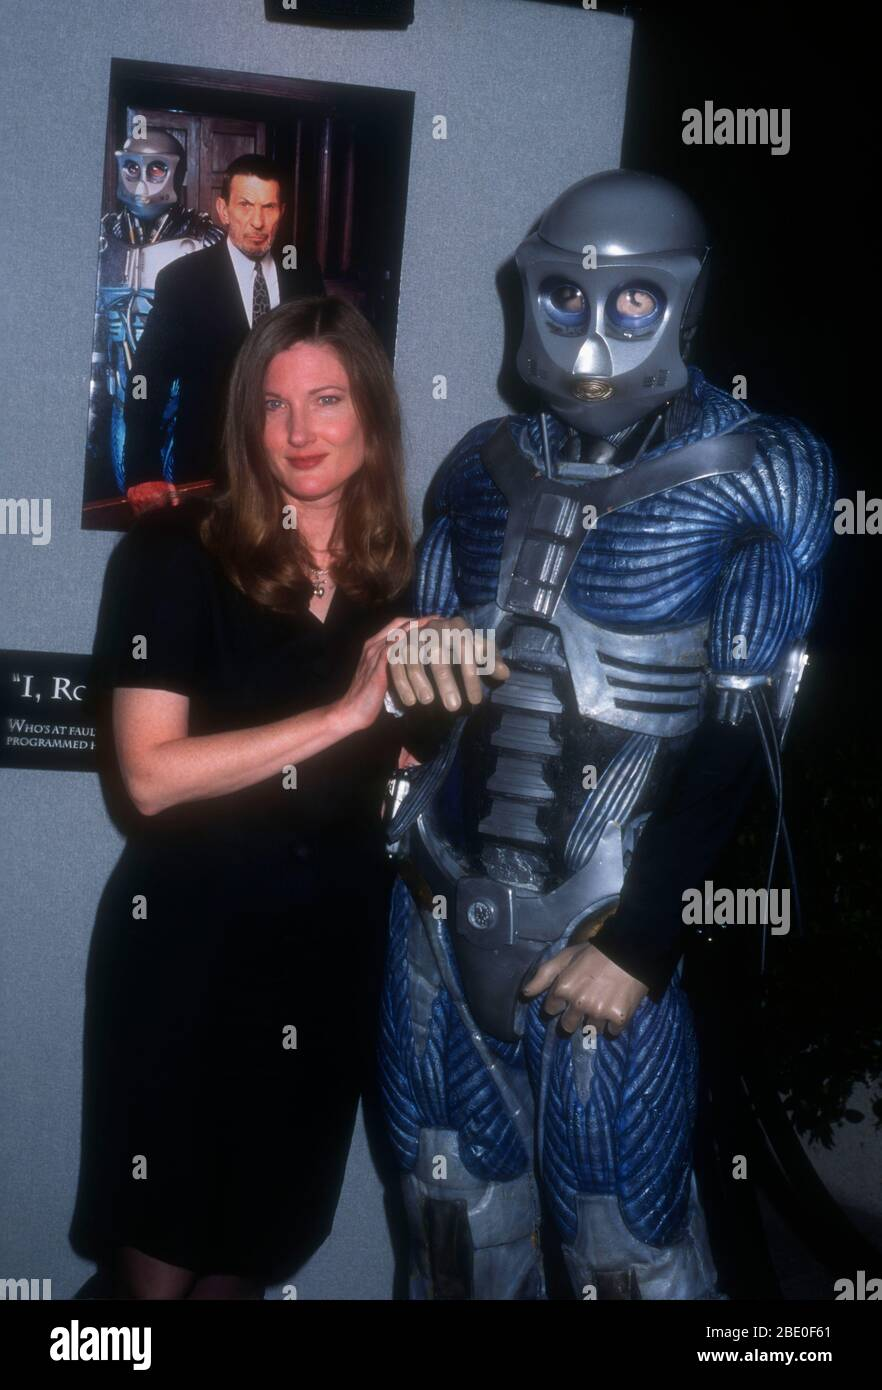 Santa Monica, California, USA 14th September 1995 Actress Annette O'Toole attends Star-Studded Luncheon to Launch 'The Outer Limits' in Syndication on September 14, 1995 at MGM Plaza in Santa Monica, California, USA. Photo by Barry King/Alamy Stock Photo Stock Photo